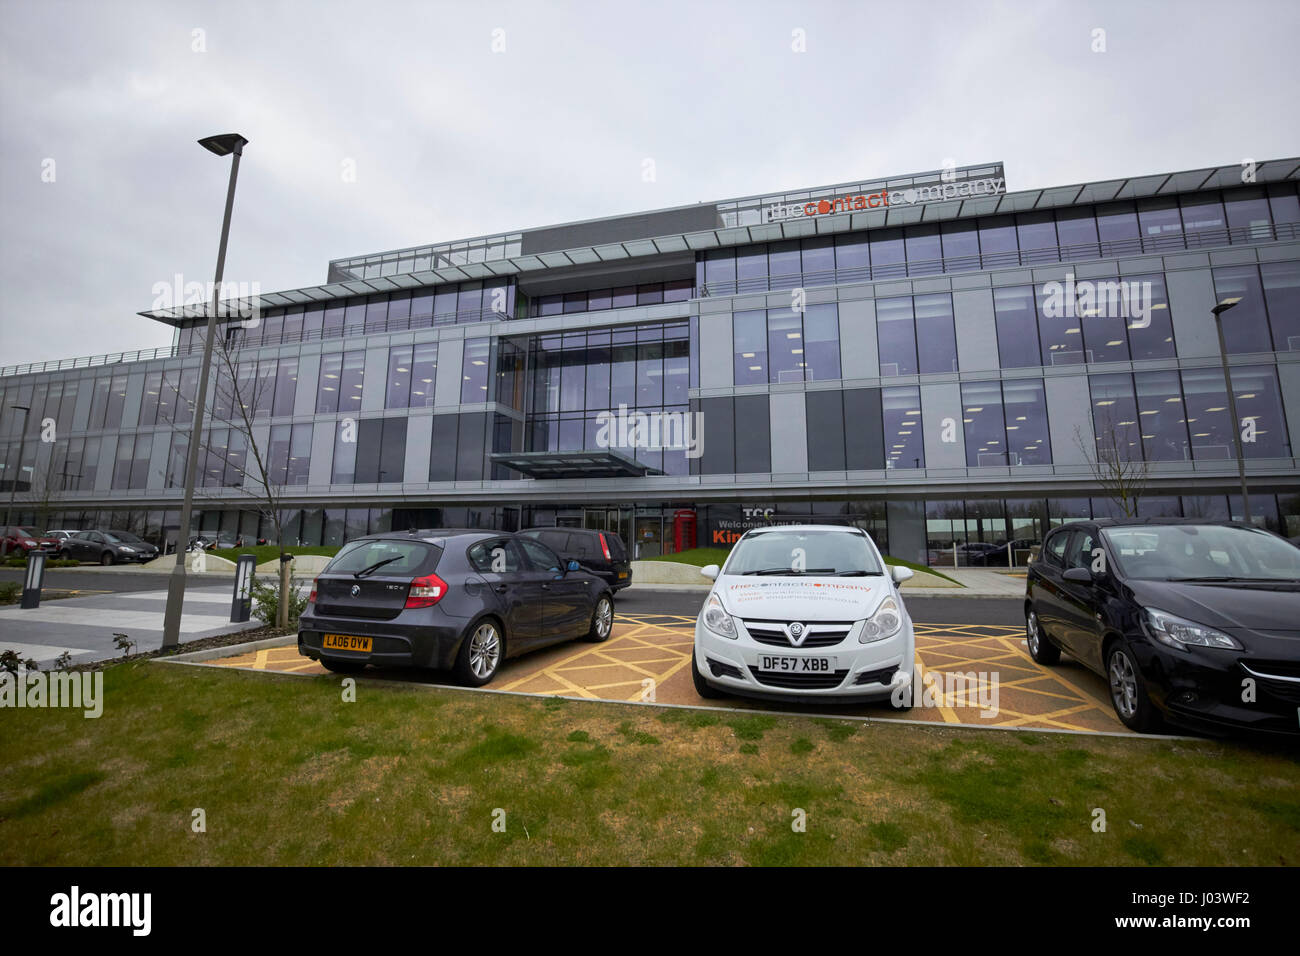 kingsgate the contact company call centre building wirral Liverpool UK - Stock Image